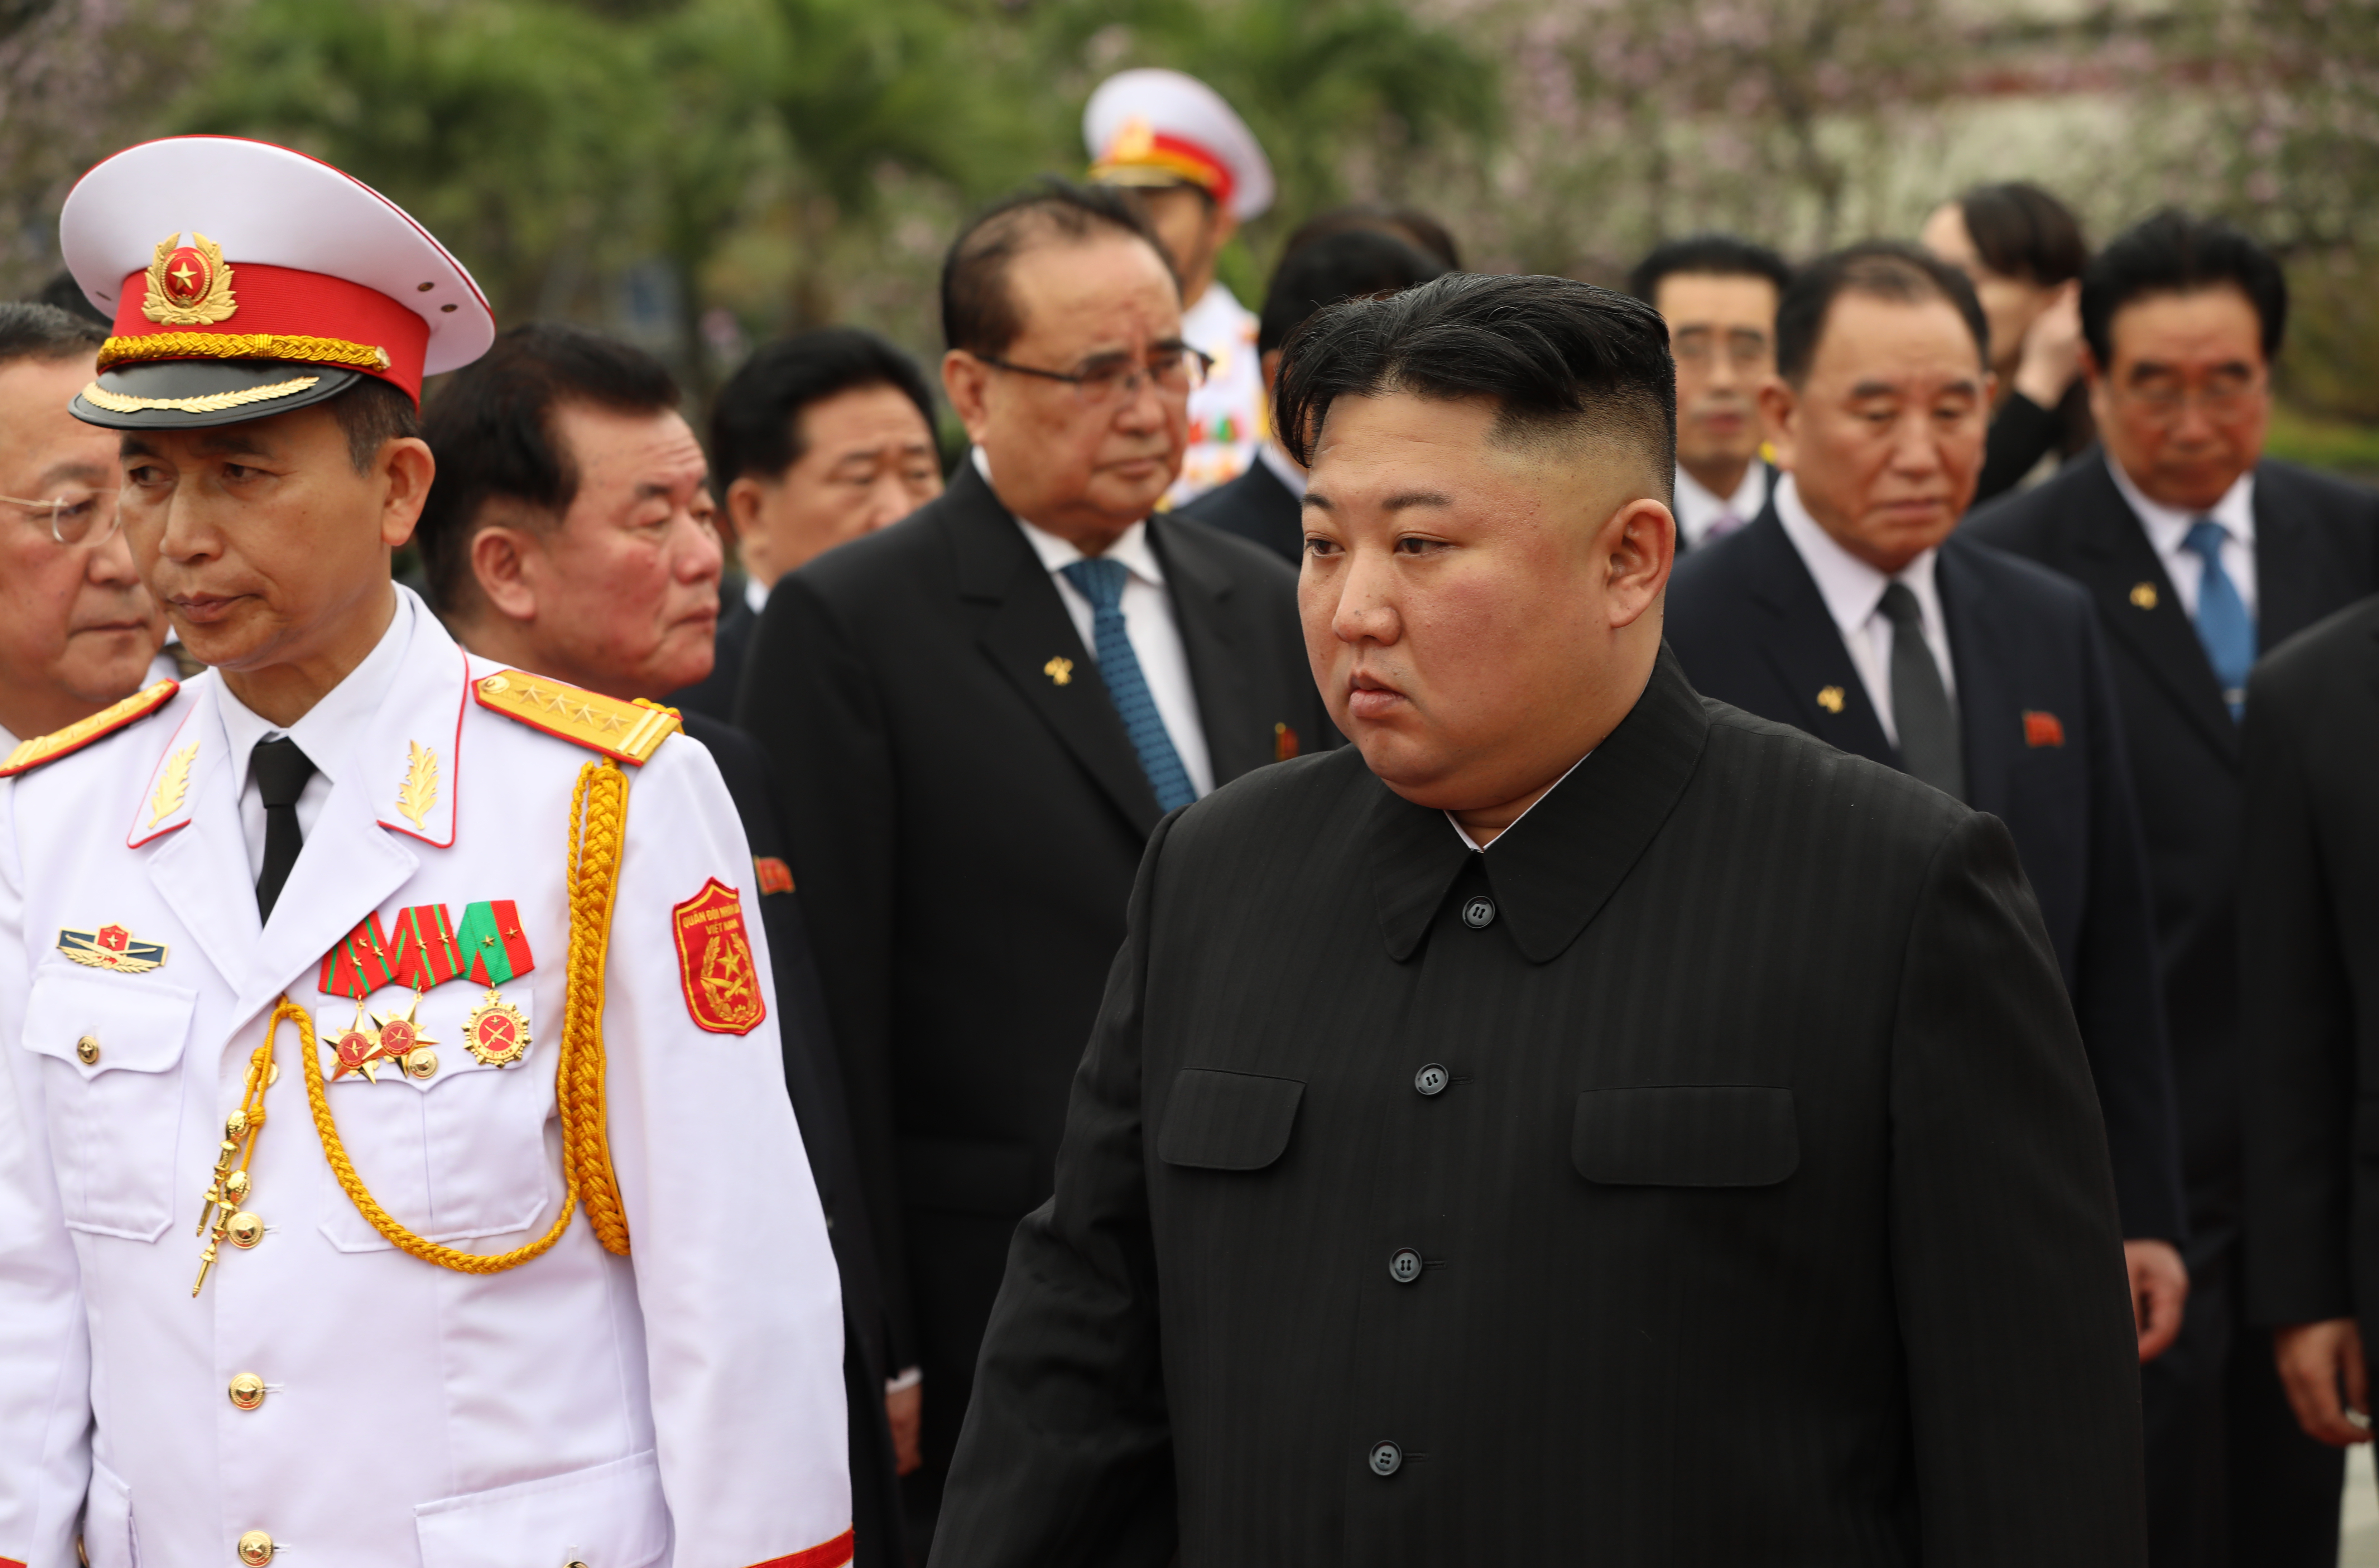 North Korean leader Kim Jong Un attended a wreath laying ceremony at the Ho Chi Minh mausoleum on March 2, 2019 in Hanoi, Vietnam.That came days after his failed summit with President Donald Trump.